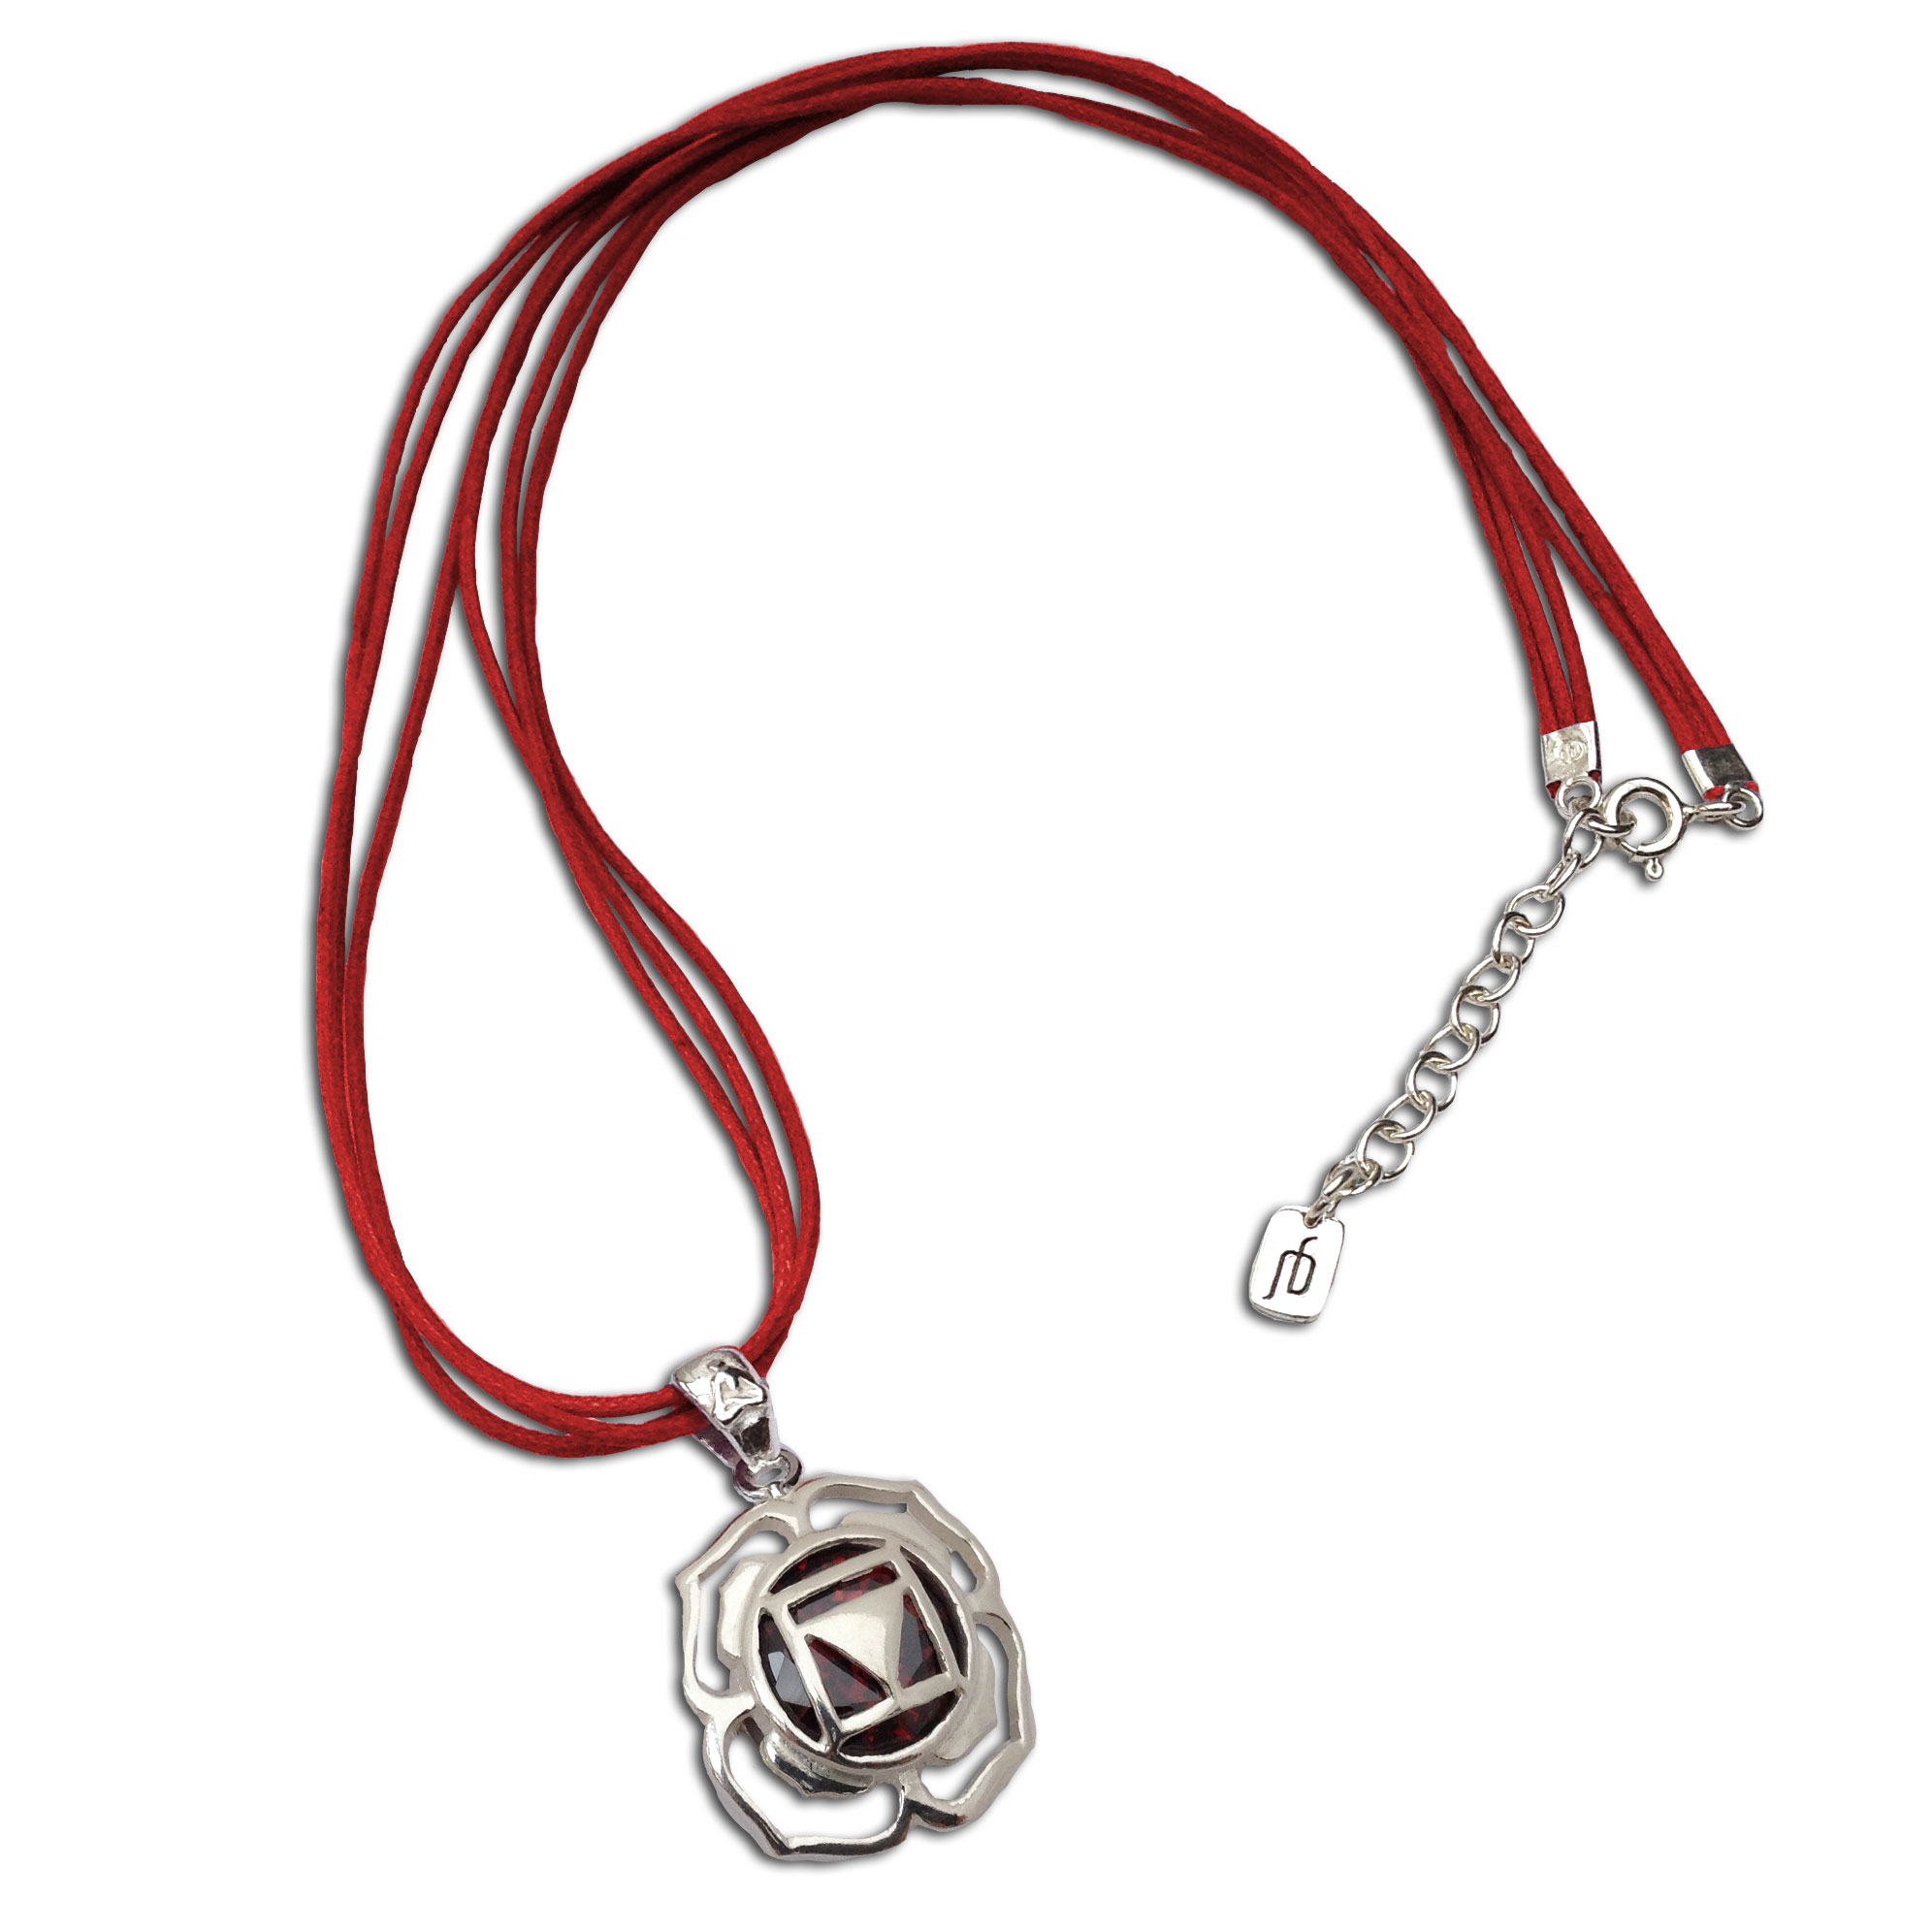 Root Chakra Stone Necklace Adjustable 16 to 17 inches